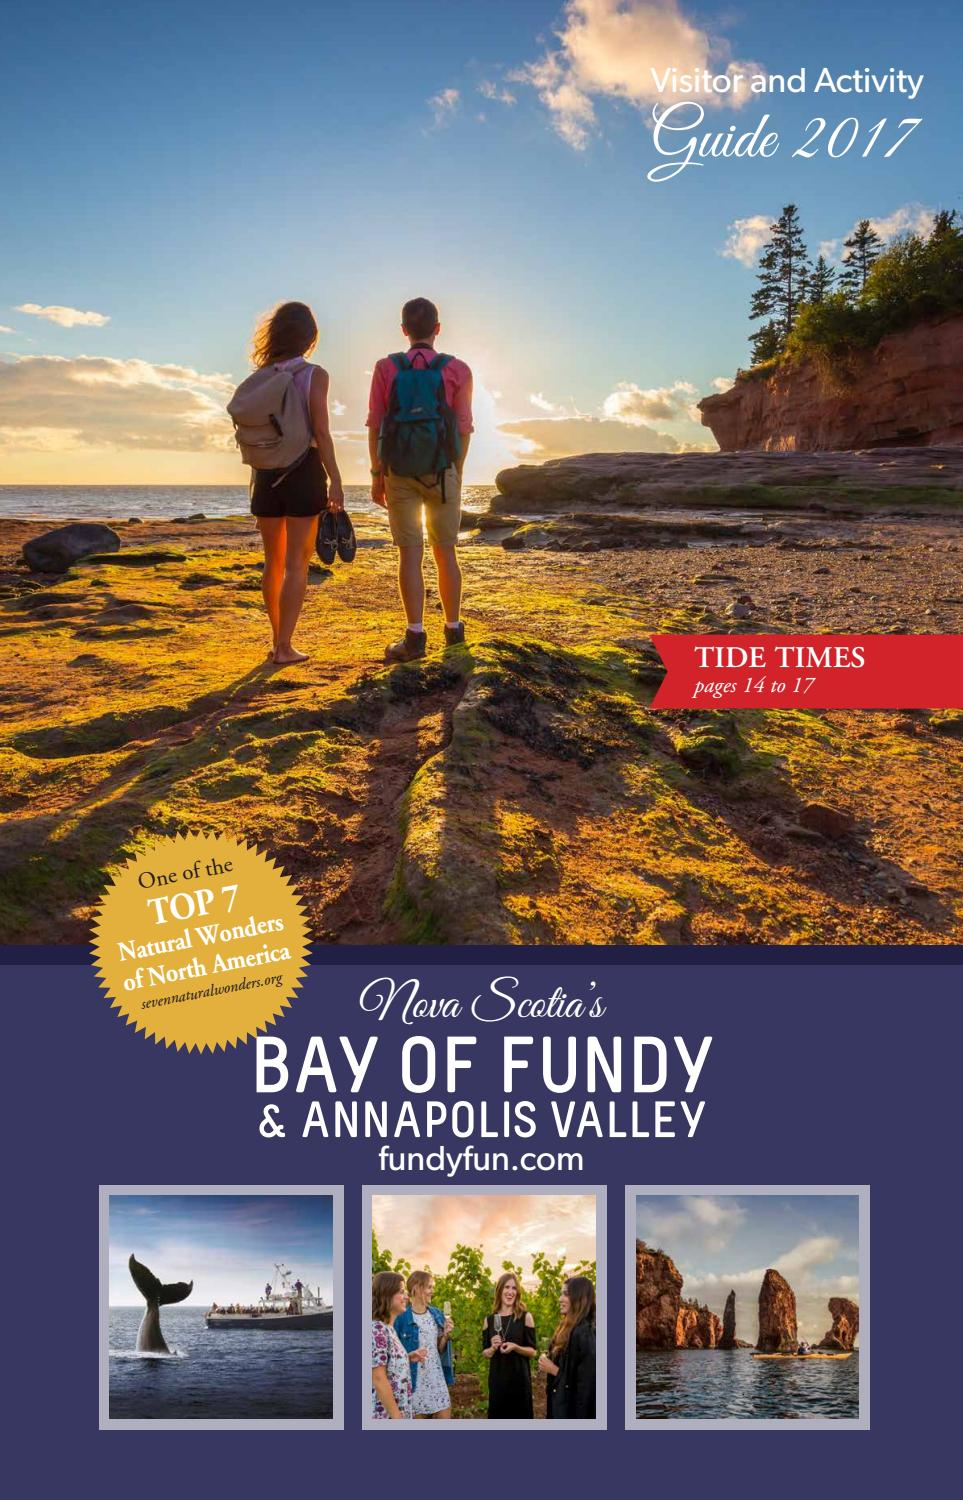 Bay of fundy annapolis valley shore guide 2017 by metro guide bay of fundy annapolis valley shore guide 2017 by metro guide publishing issuu nvjuhfo Choice Image